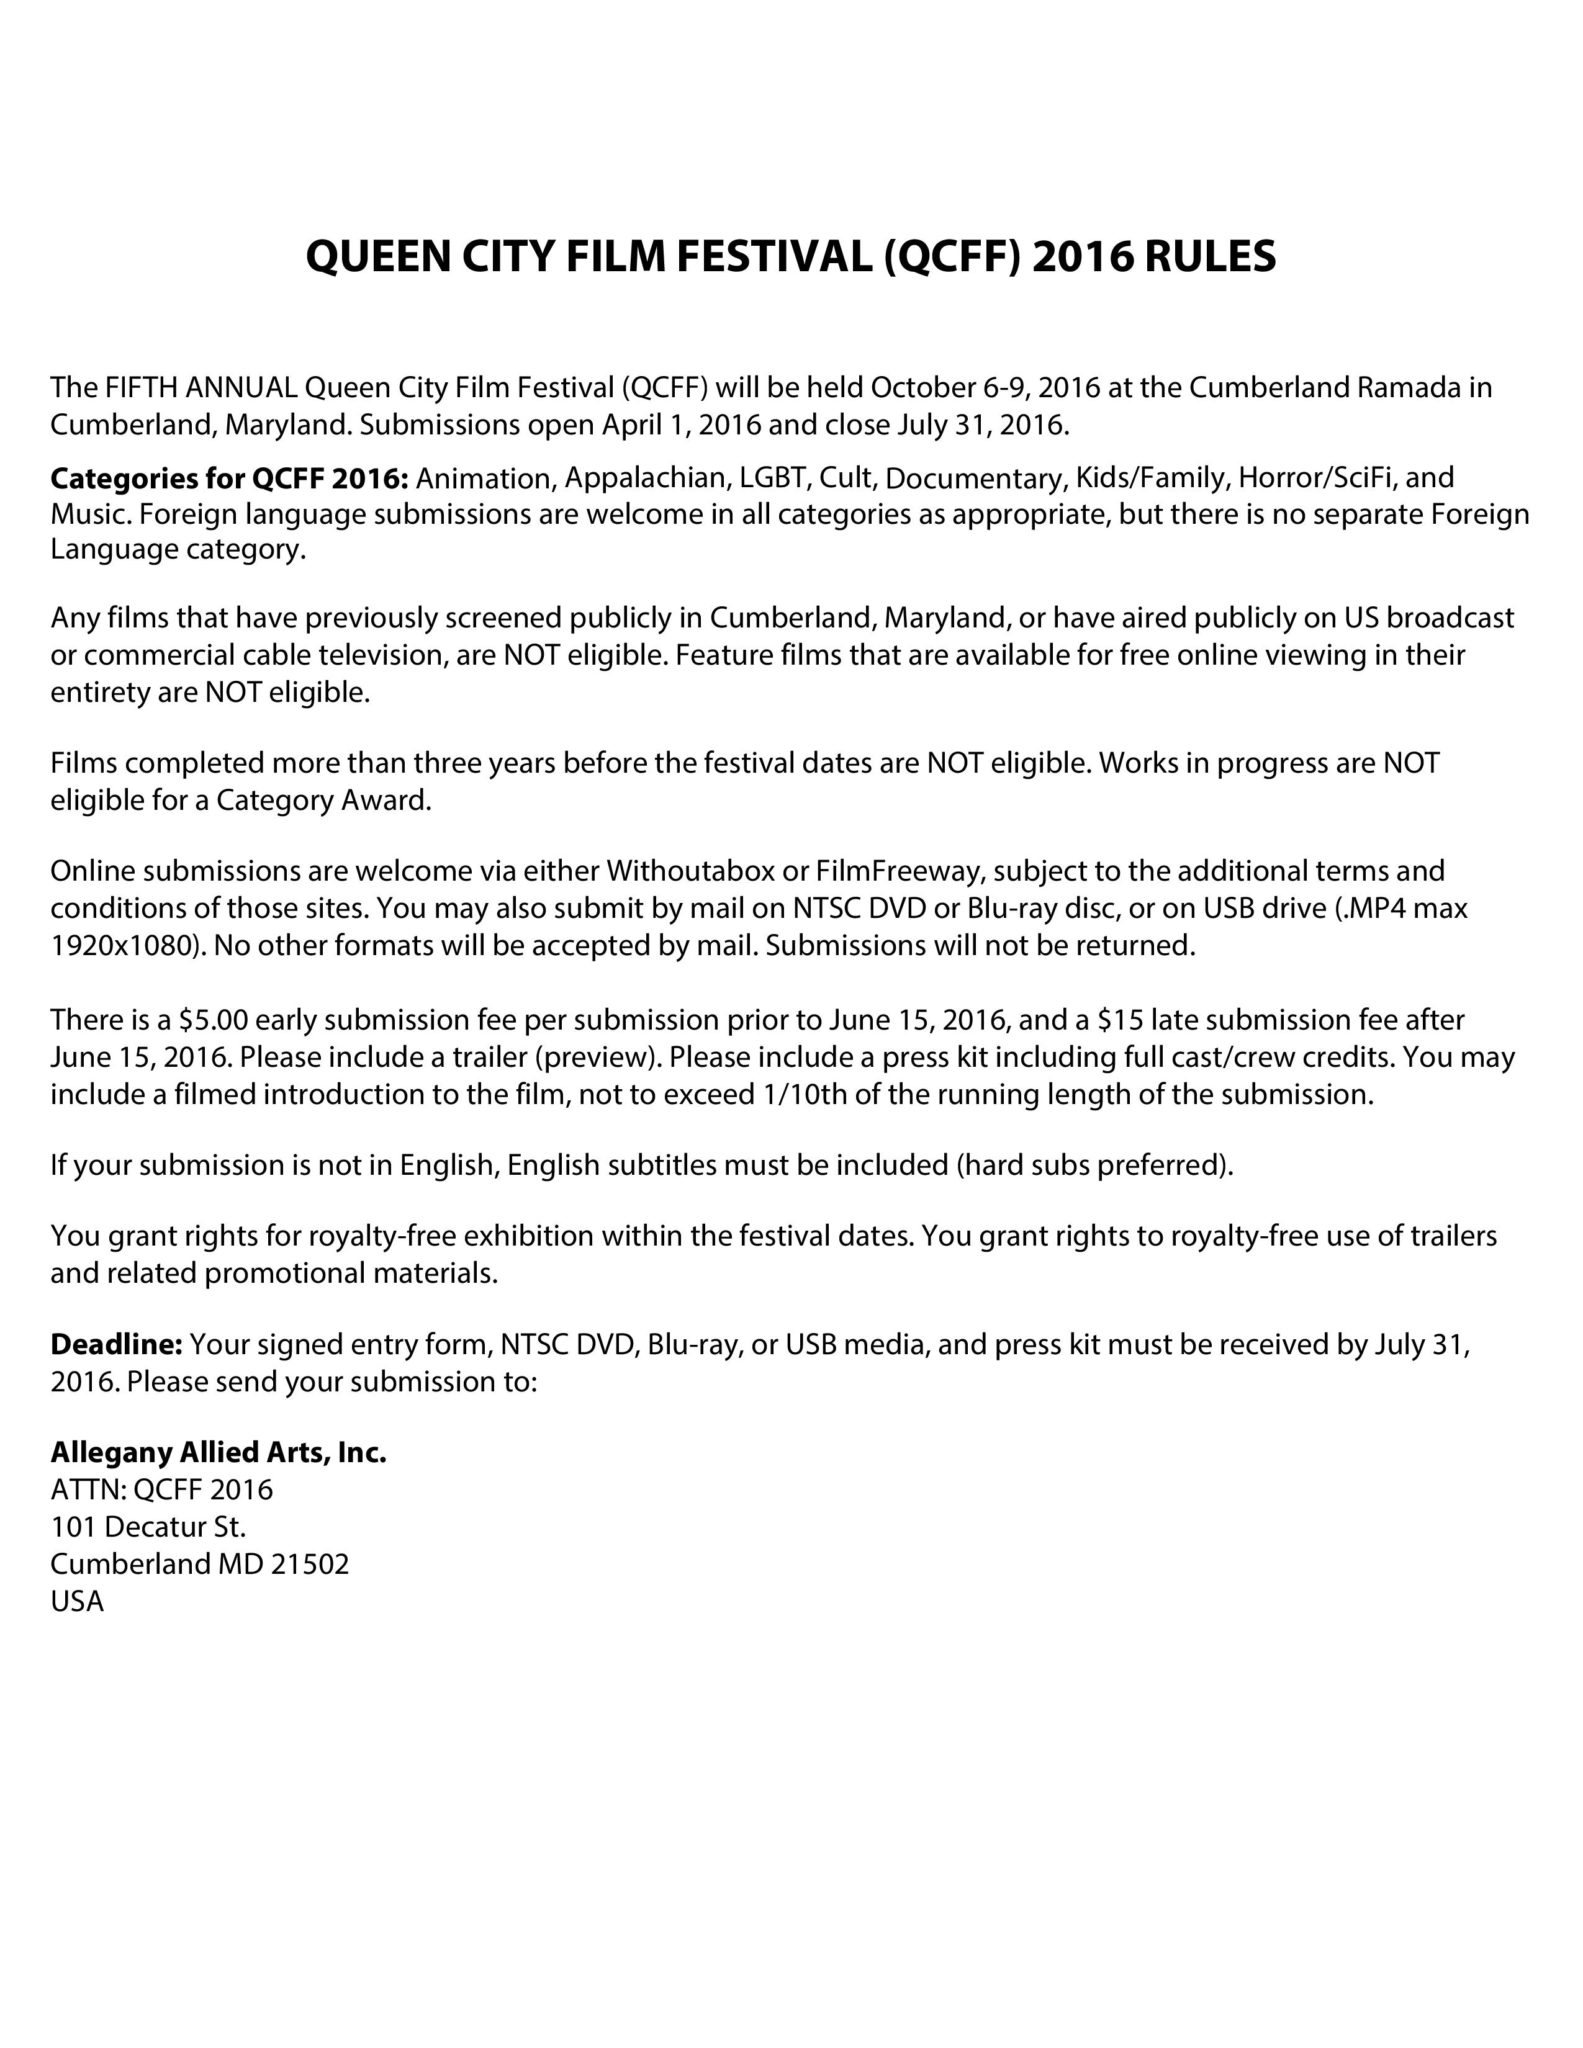 Queen City Film Festival (QCFF) 2016 Rules and Submission